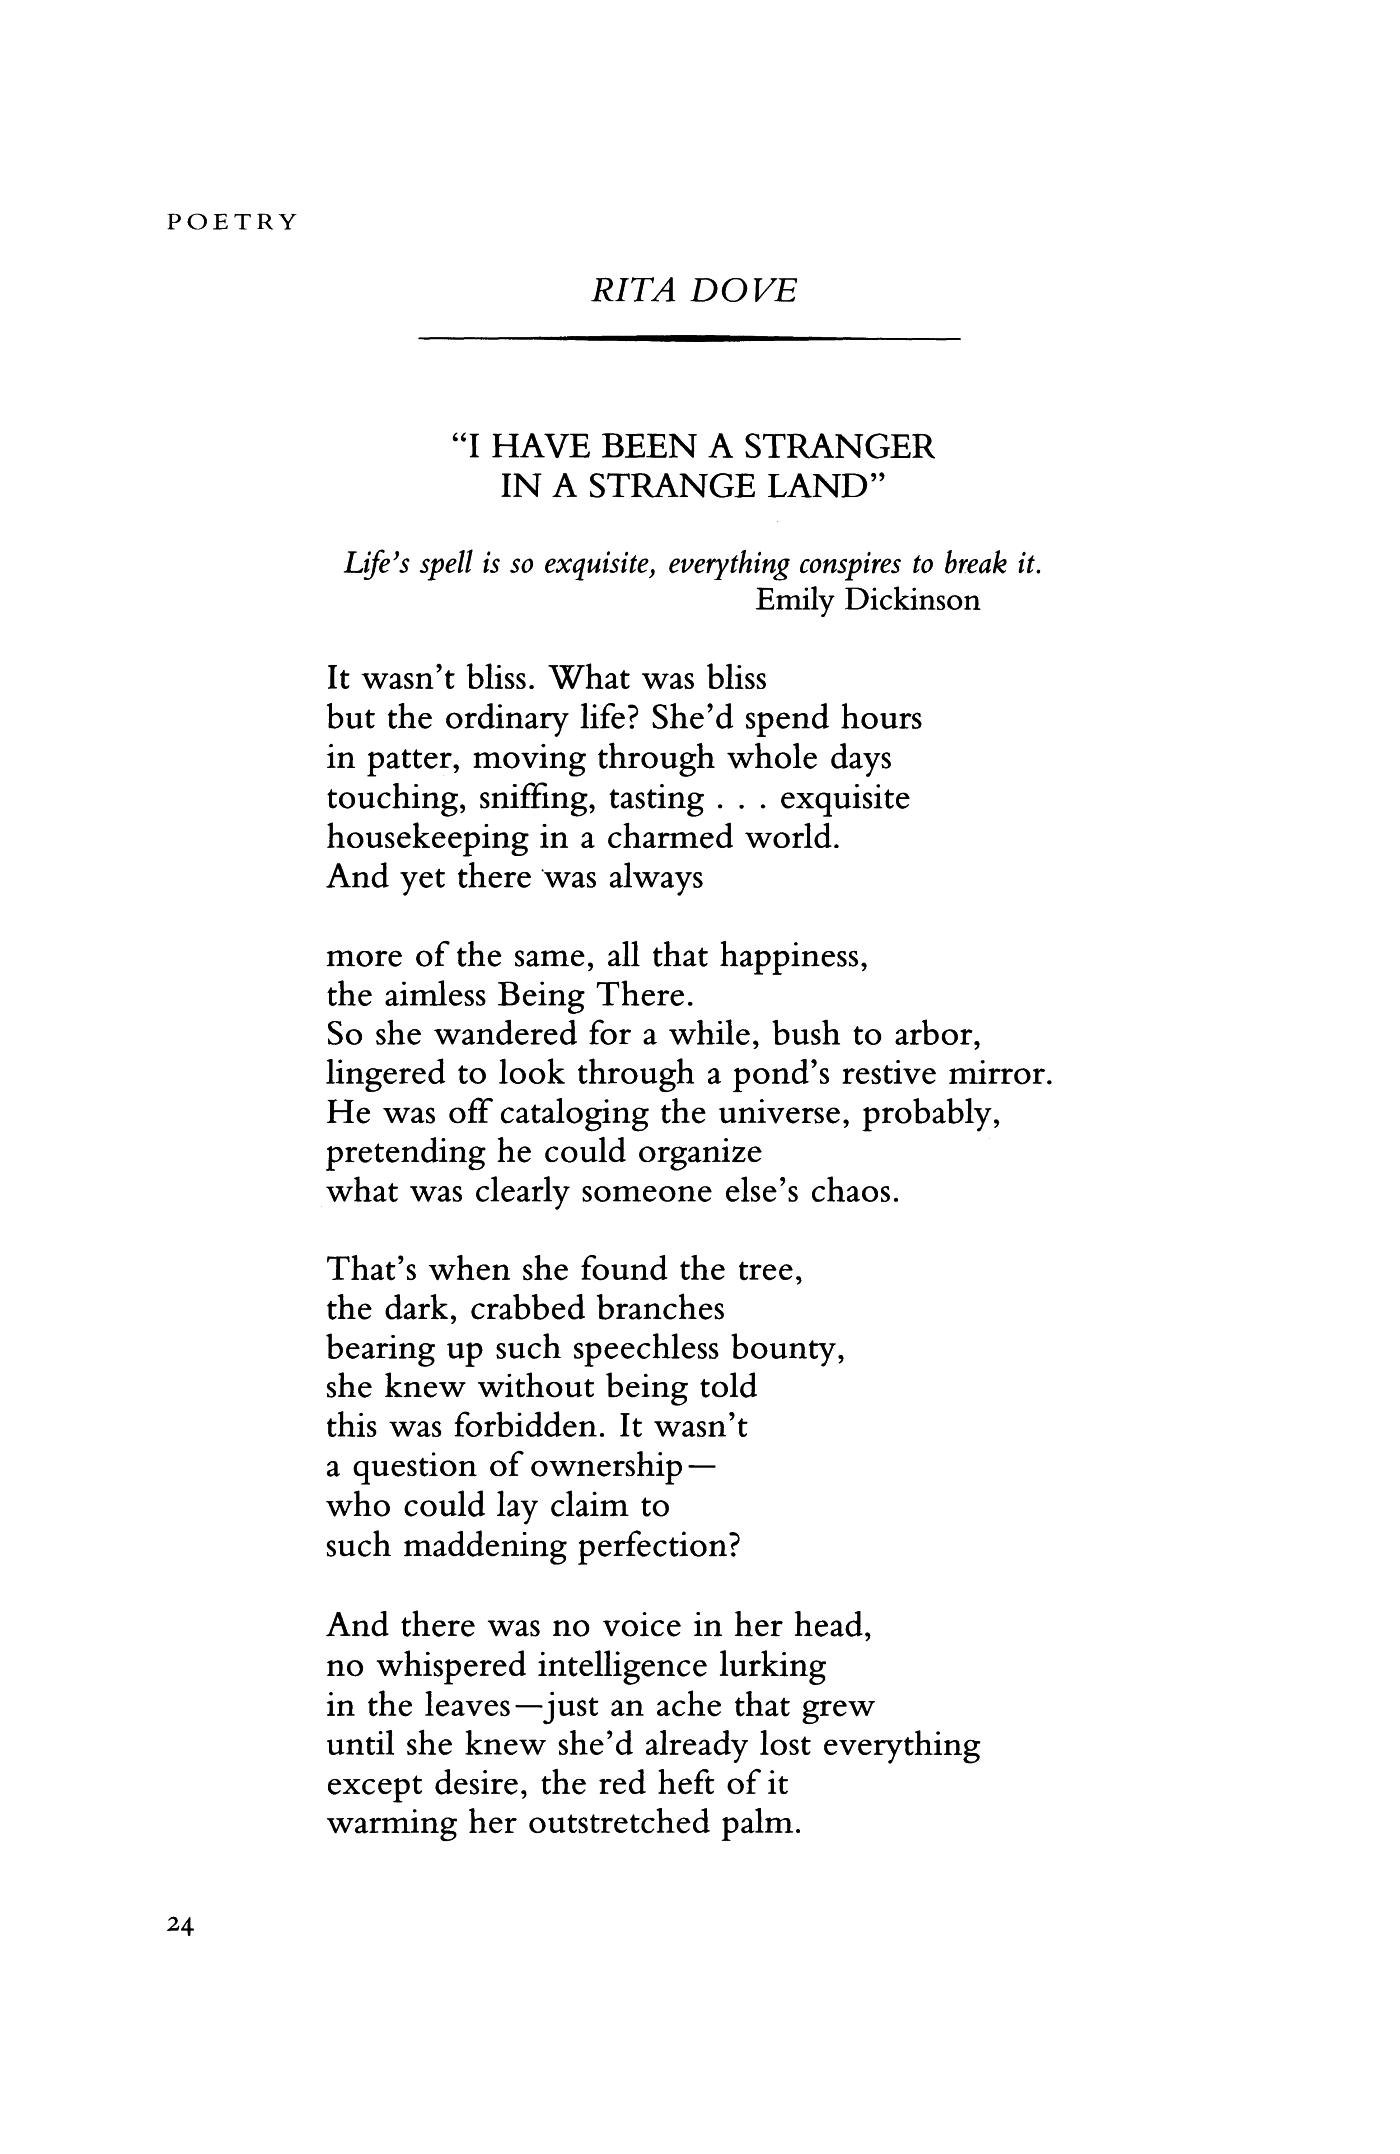 I Have Been A Stranger In A Strange Land By Rita Dove Poetry Magazine